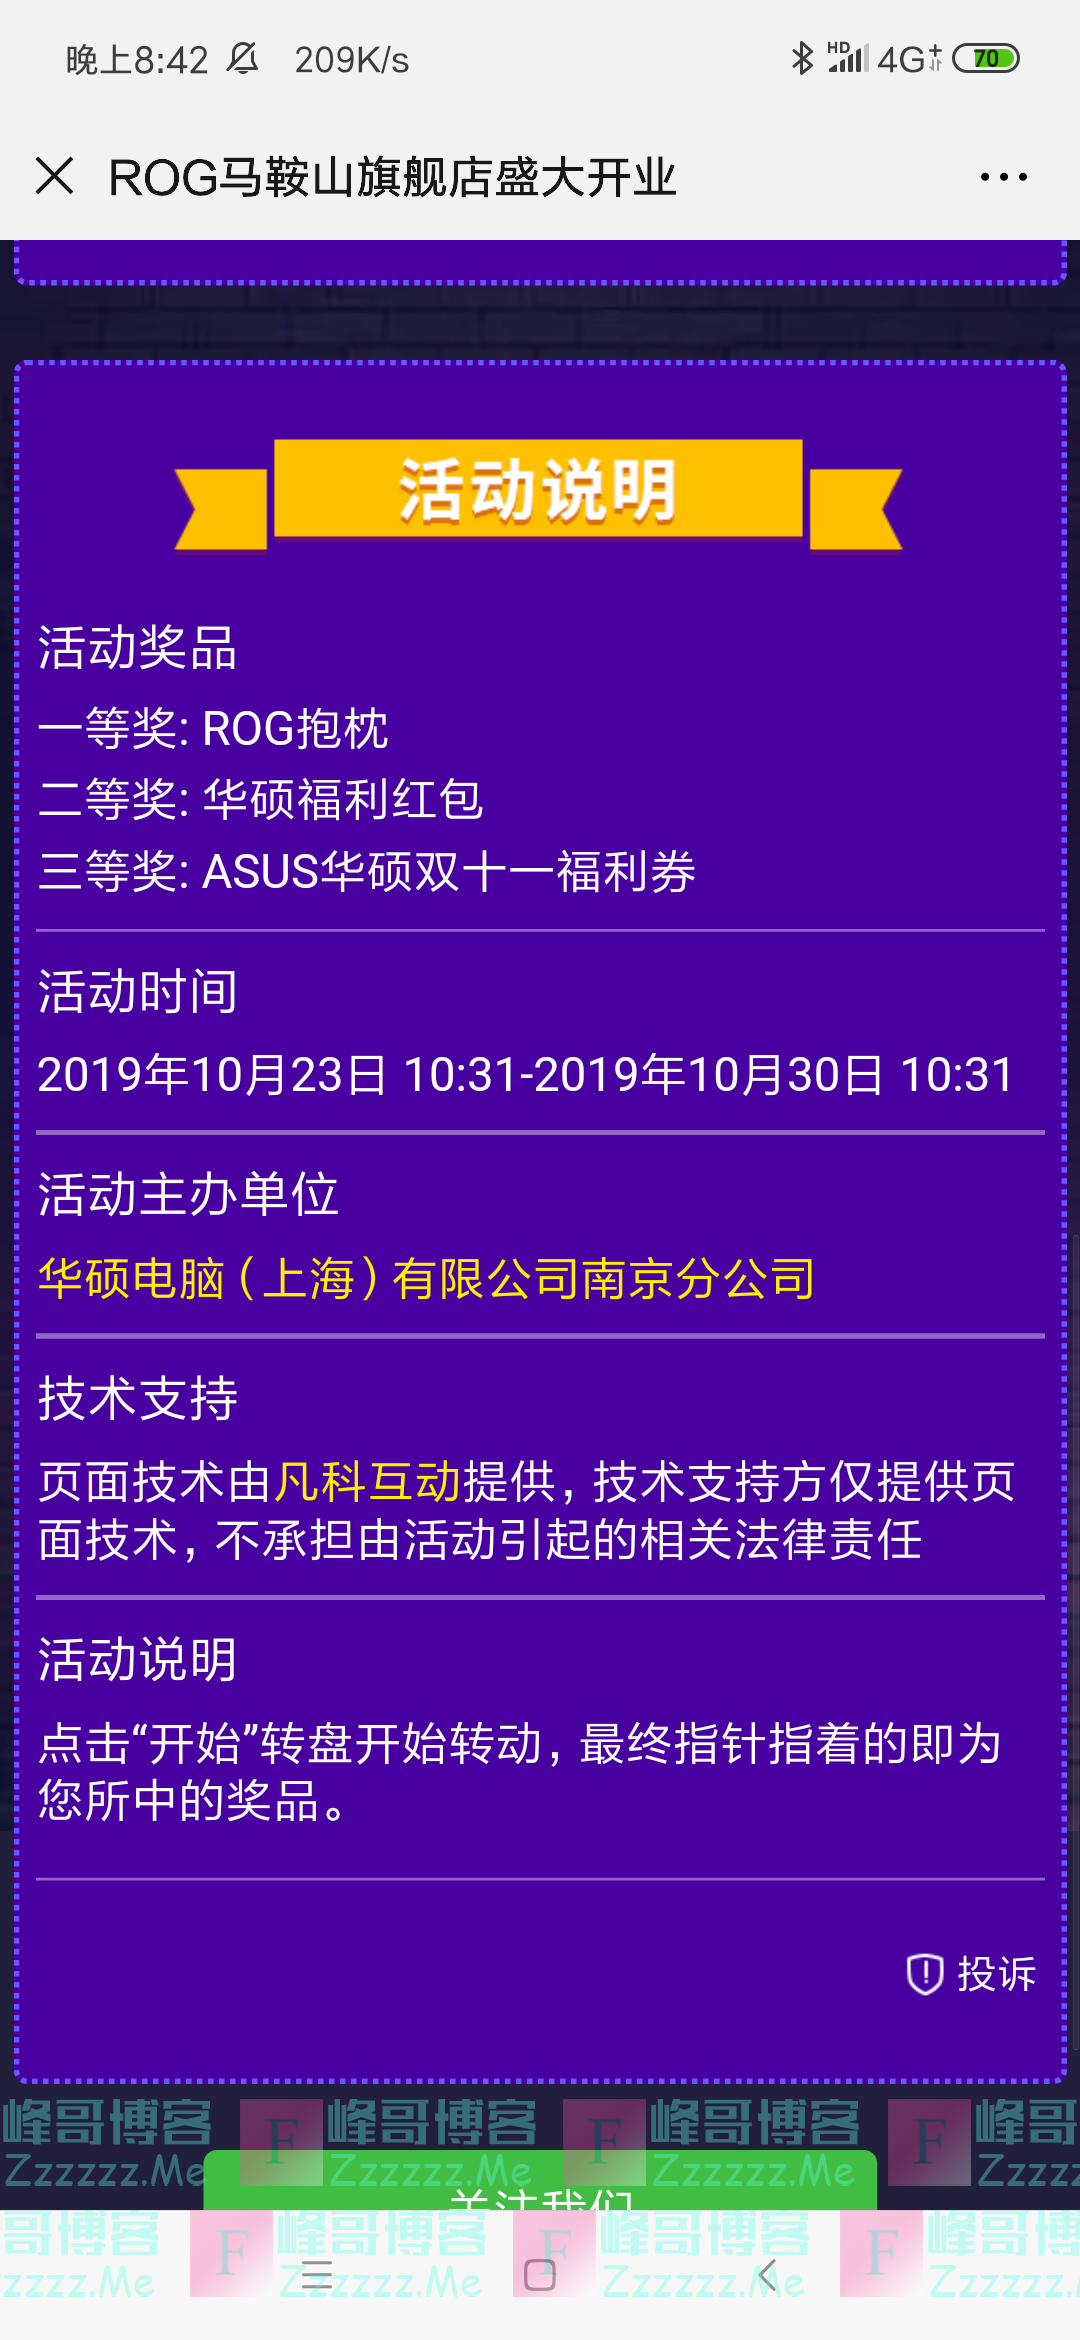 ASUS华硕苏皖转盘抽奖(截止10月30日)